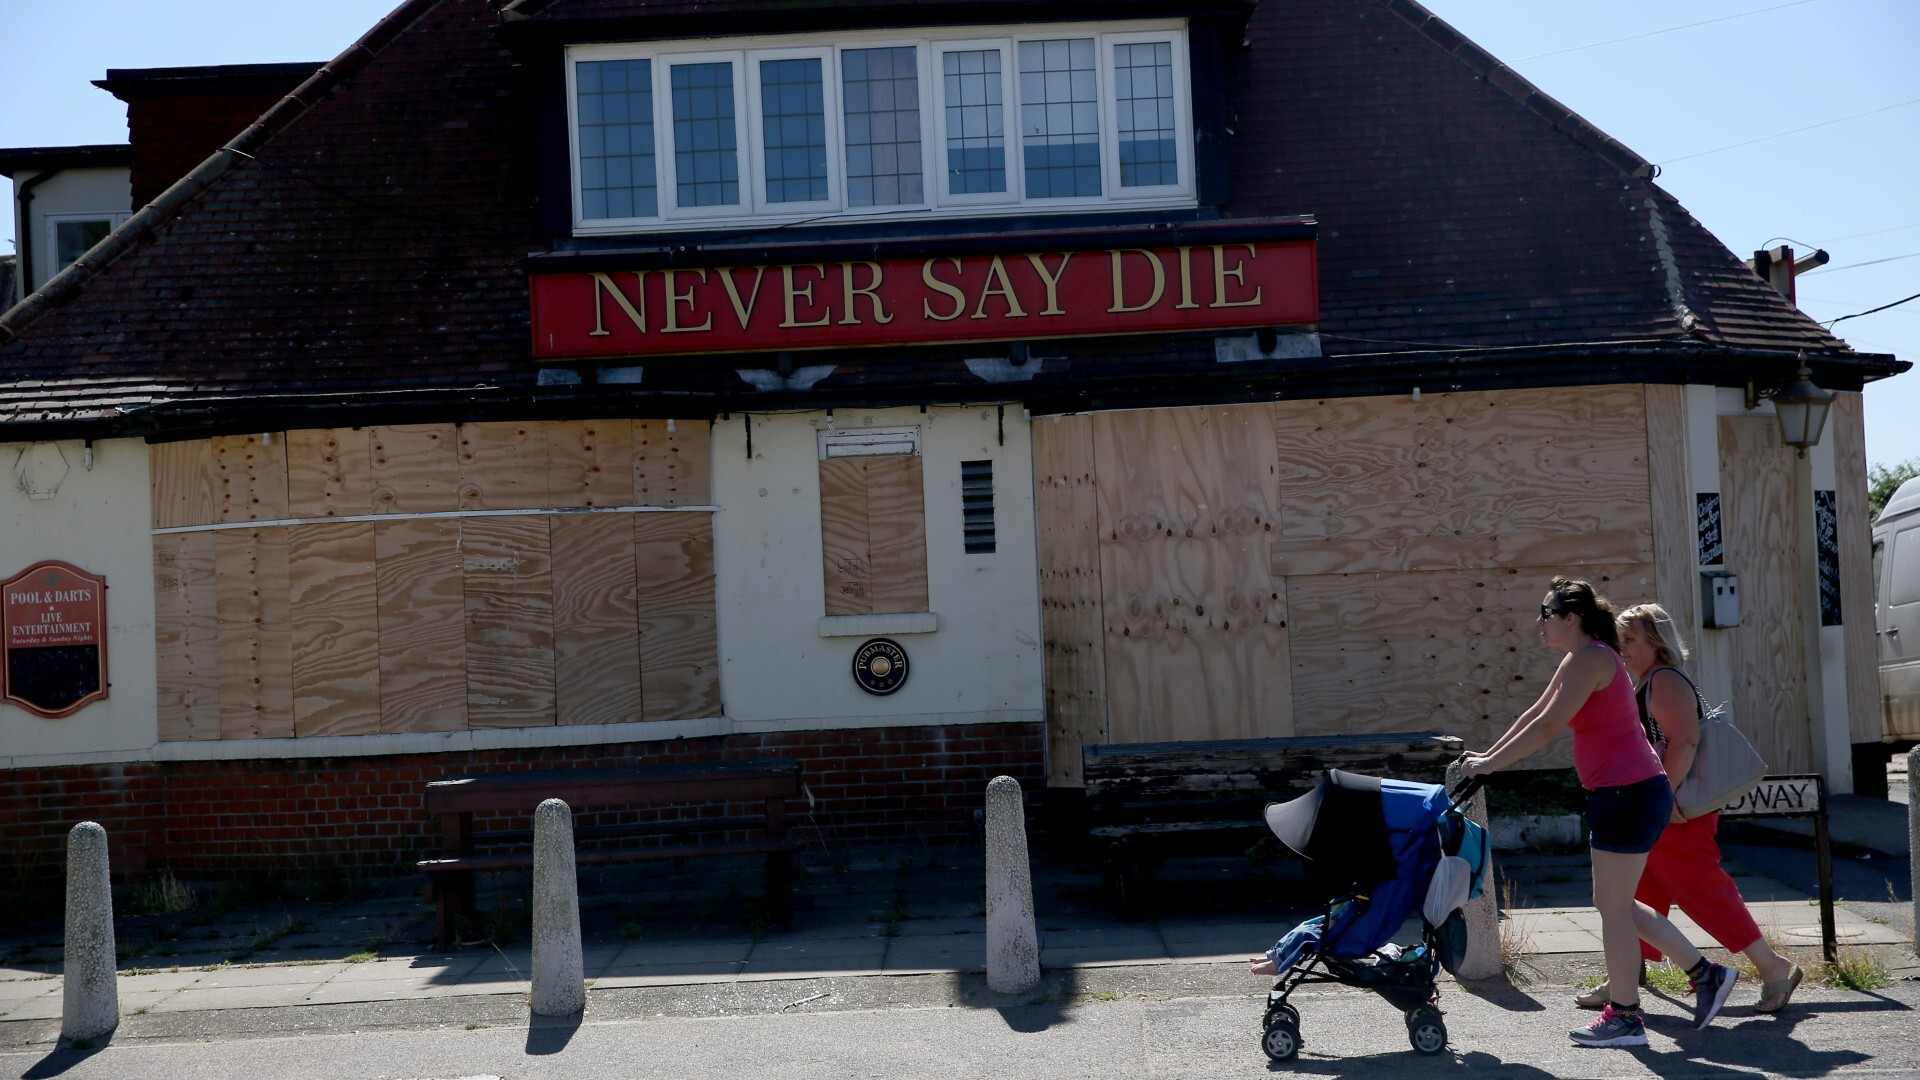 Jaywick's fight: Community support in one of UK's poorest towns